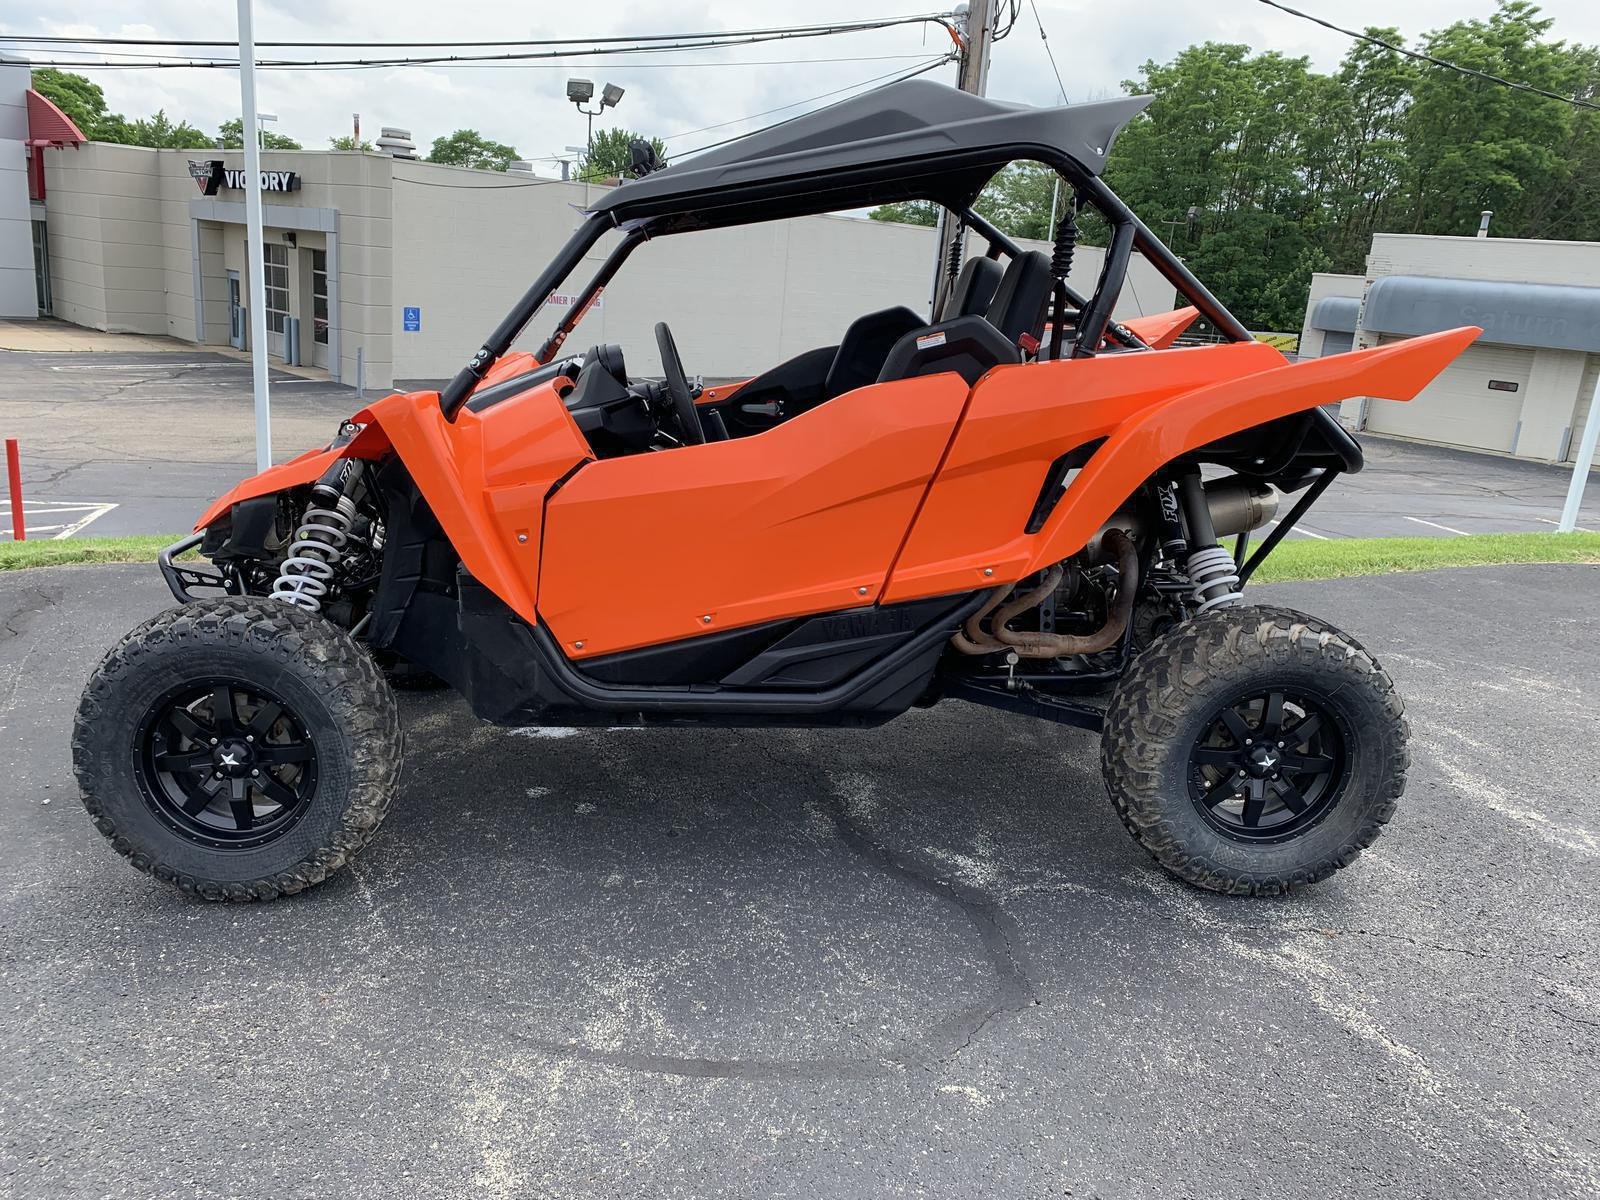 Inventory from Scarab and Yamaha Johnny K's Powersports